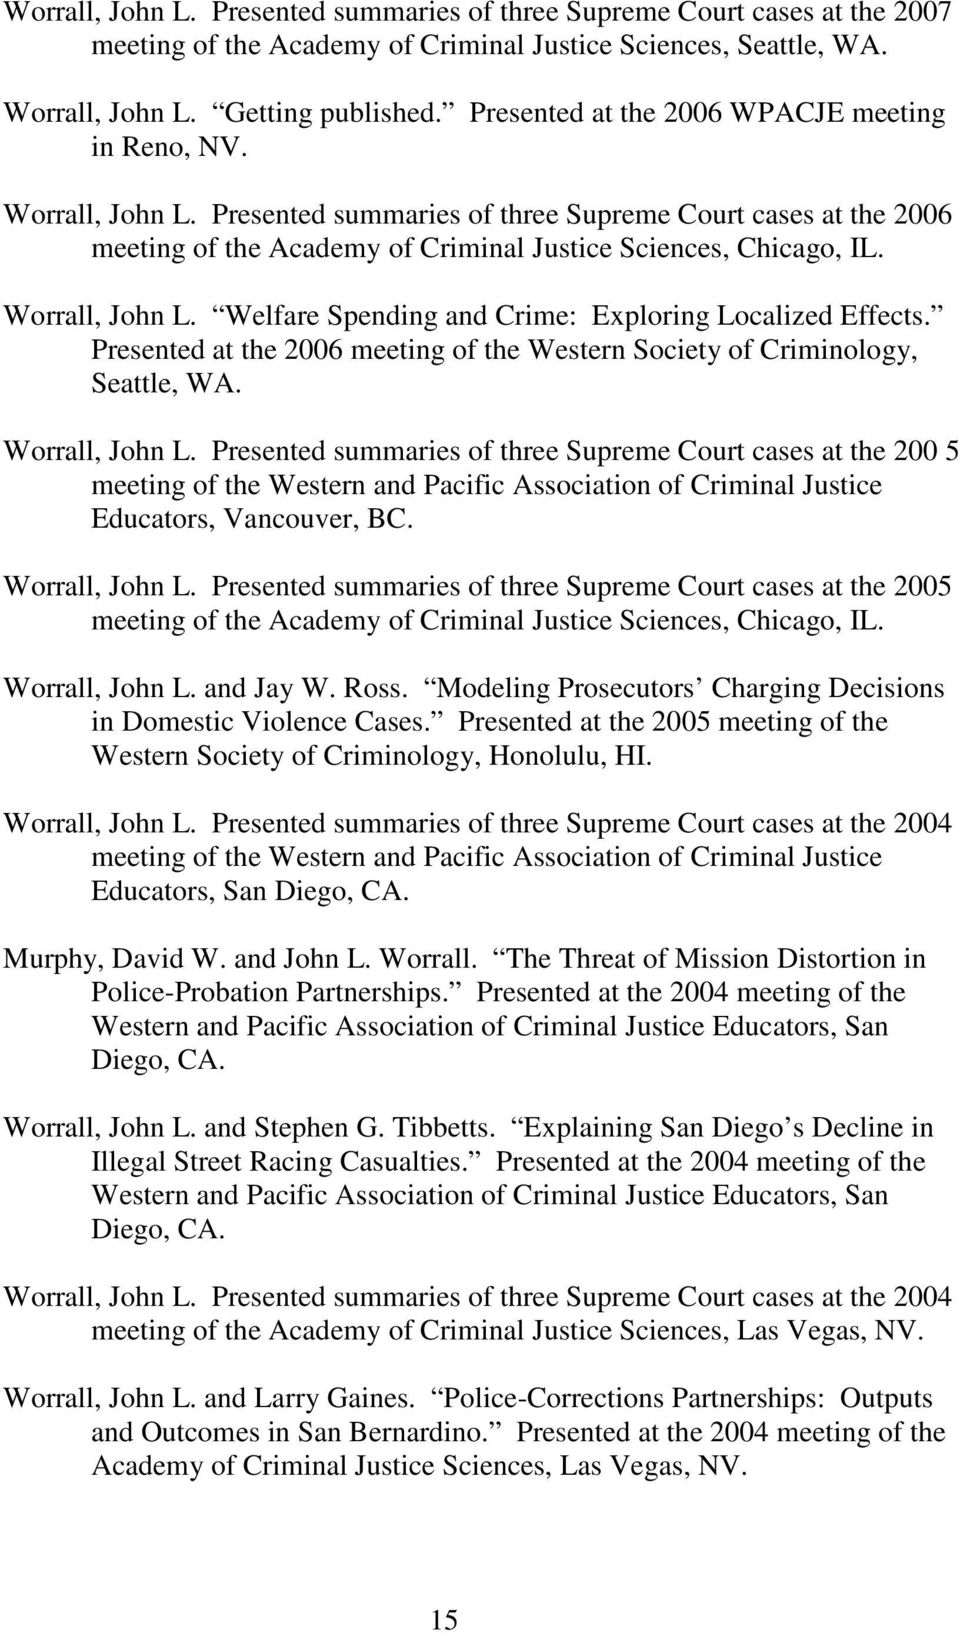 Worrall, John L. Welfare Spending and Crime: Exploring Localized Effects. Presented at the 2006 meeting of the Western Society of Criminology, Seattle, WA. Worrall, John L.